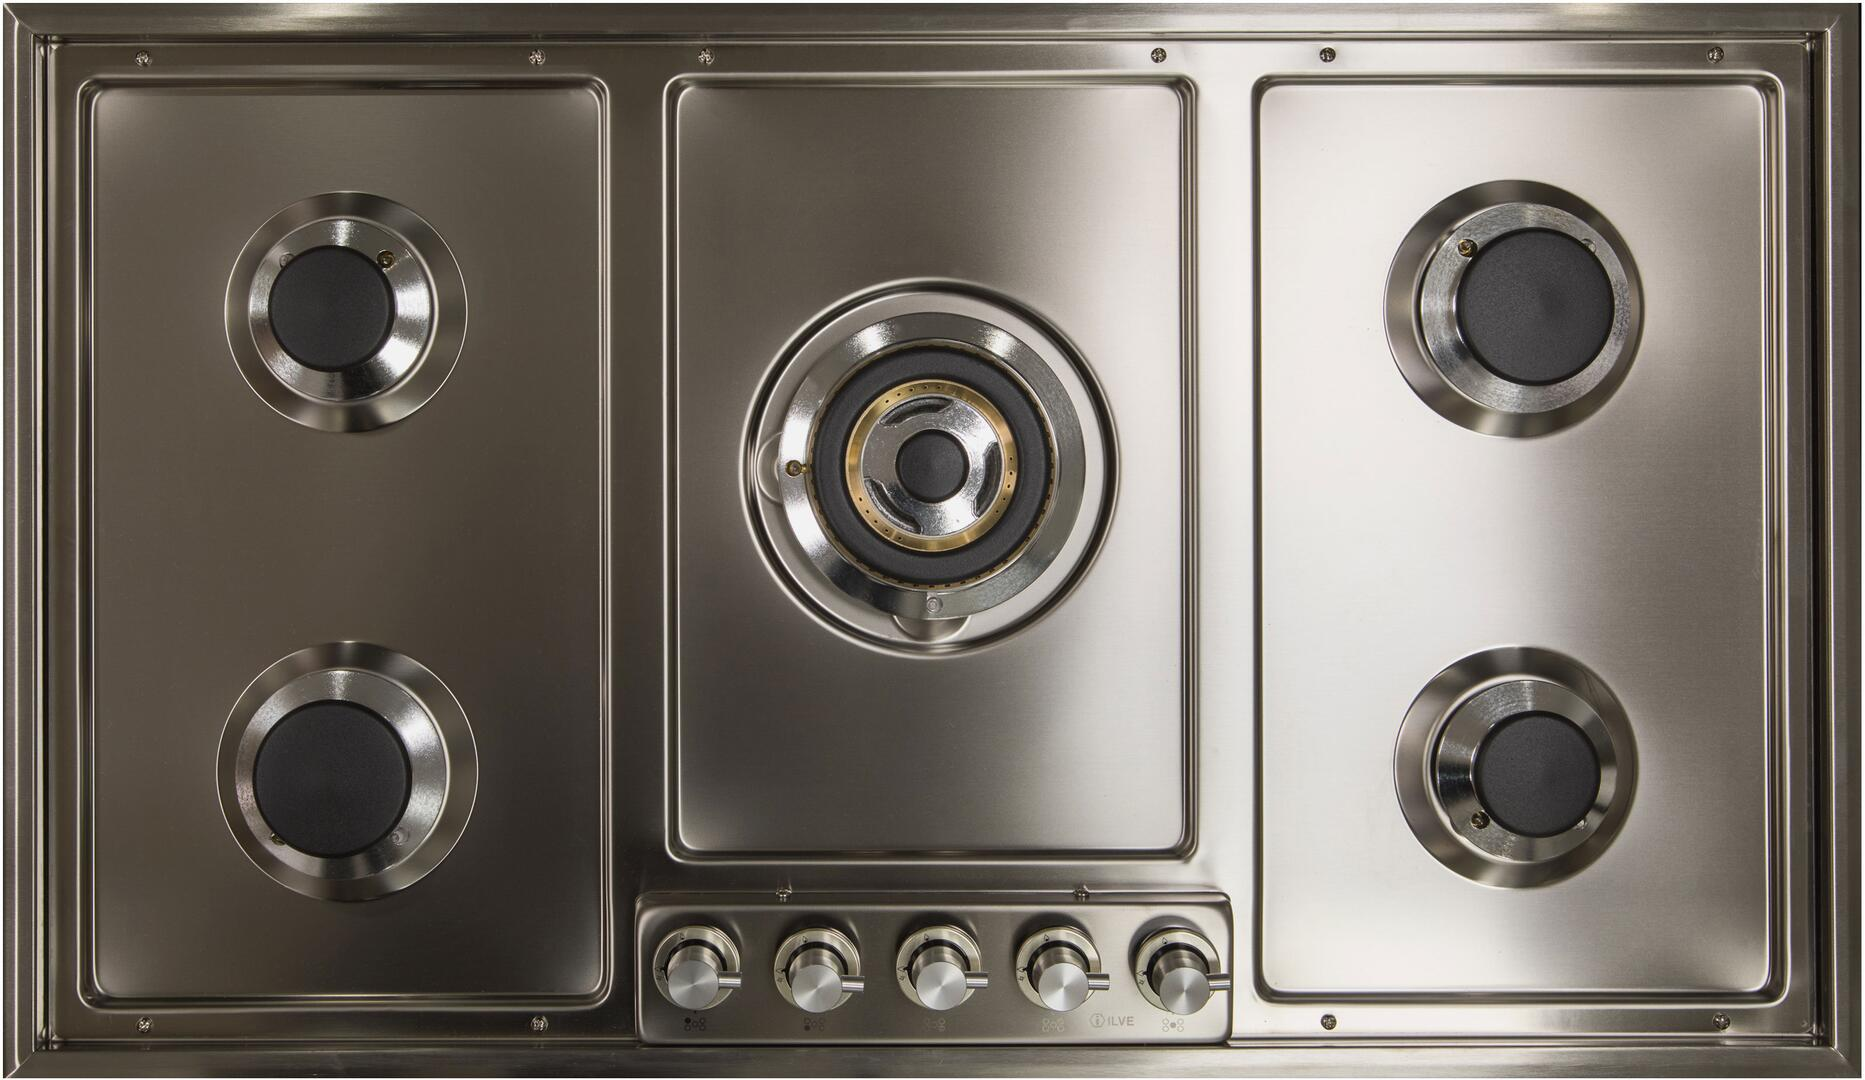 Ilve  UHP95CI Gas Cooktop Stainless Steel, UHP95CI Cooktop without Grates